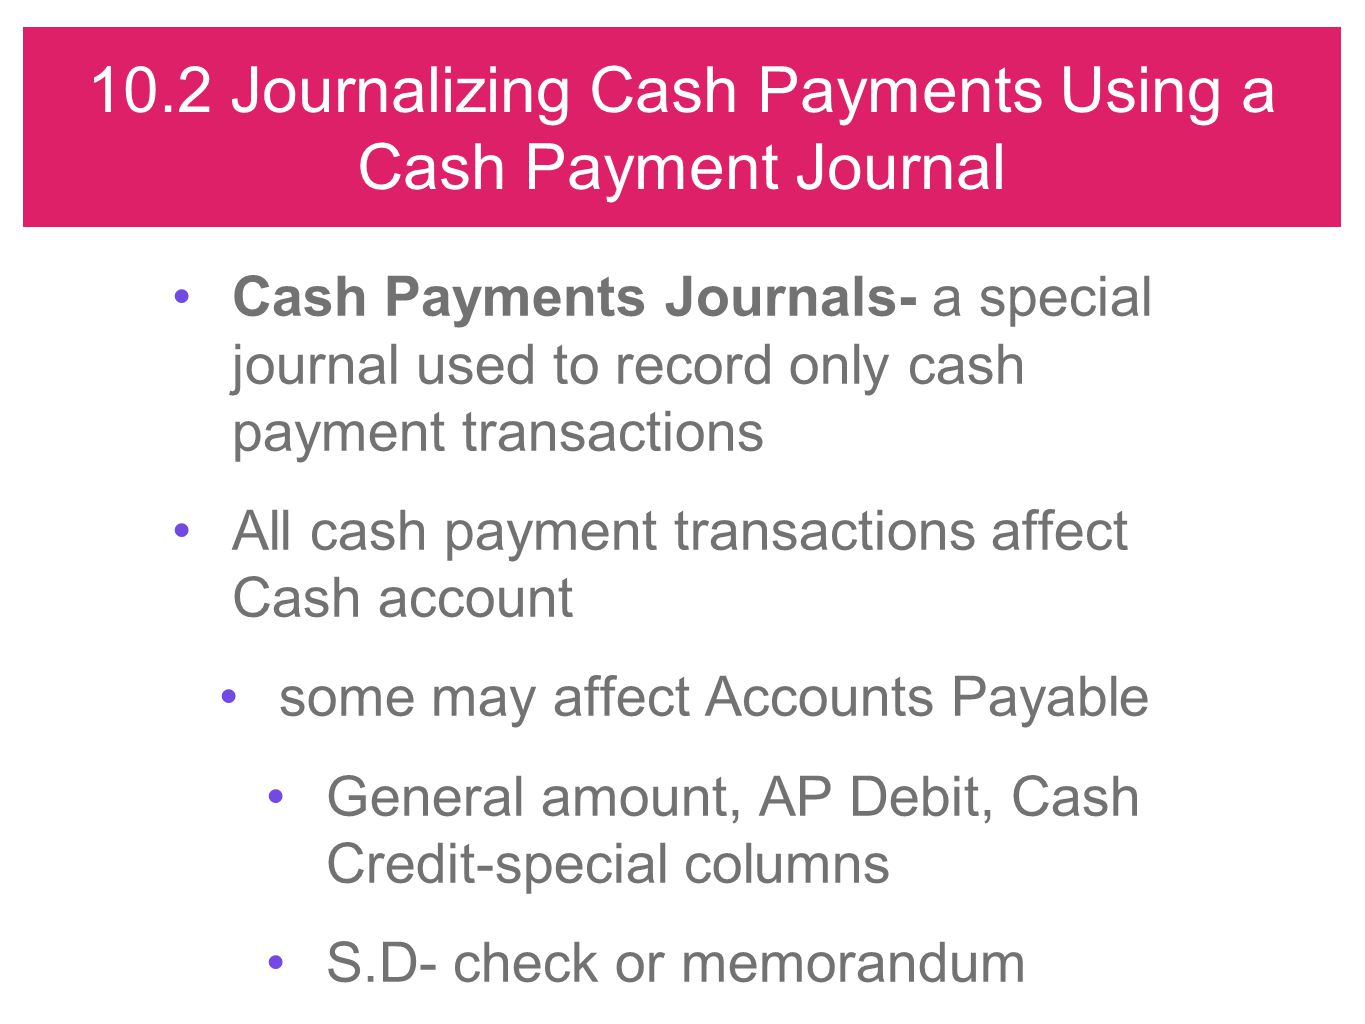 10.2 Journalizing Cash Payments Using a Cash Payment Journal